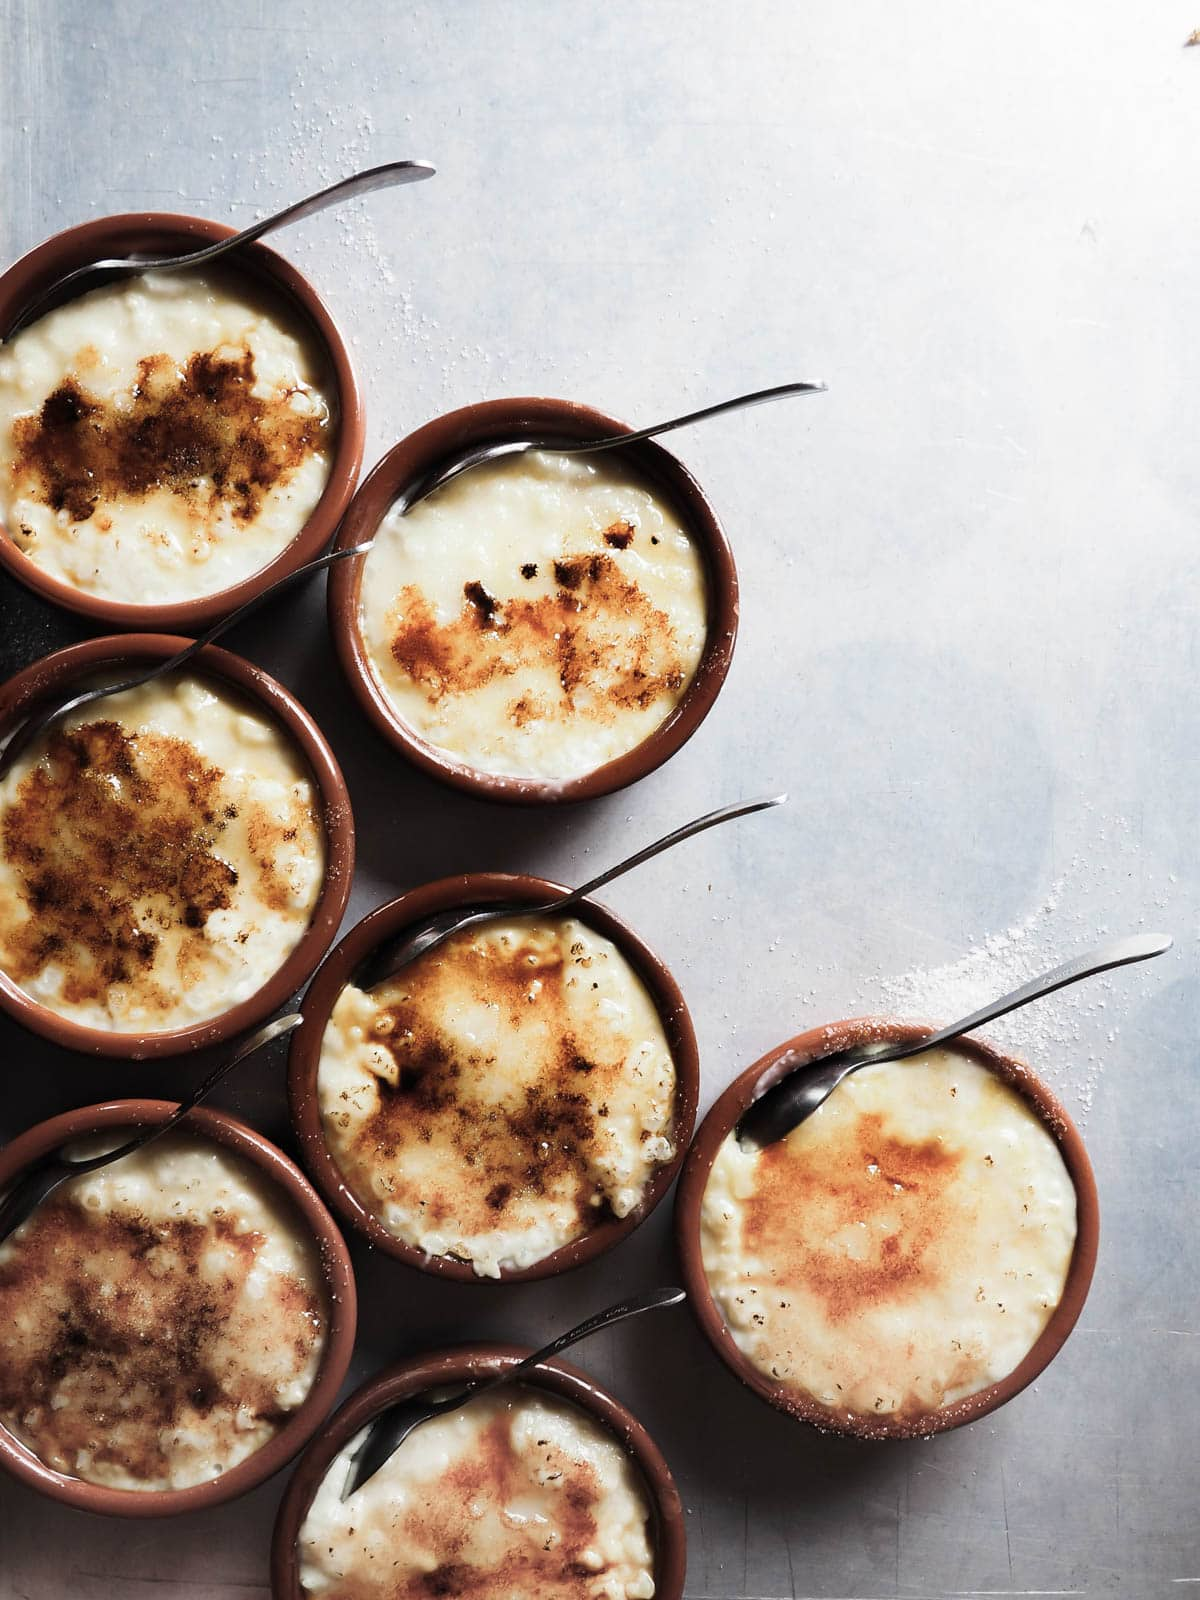 Creme brulee rice pudding